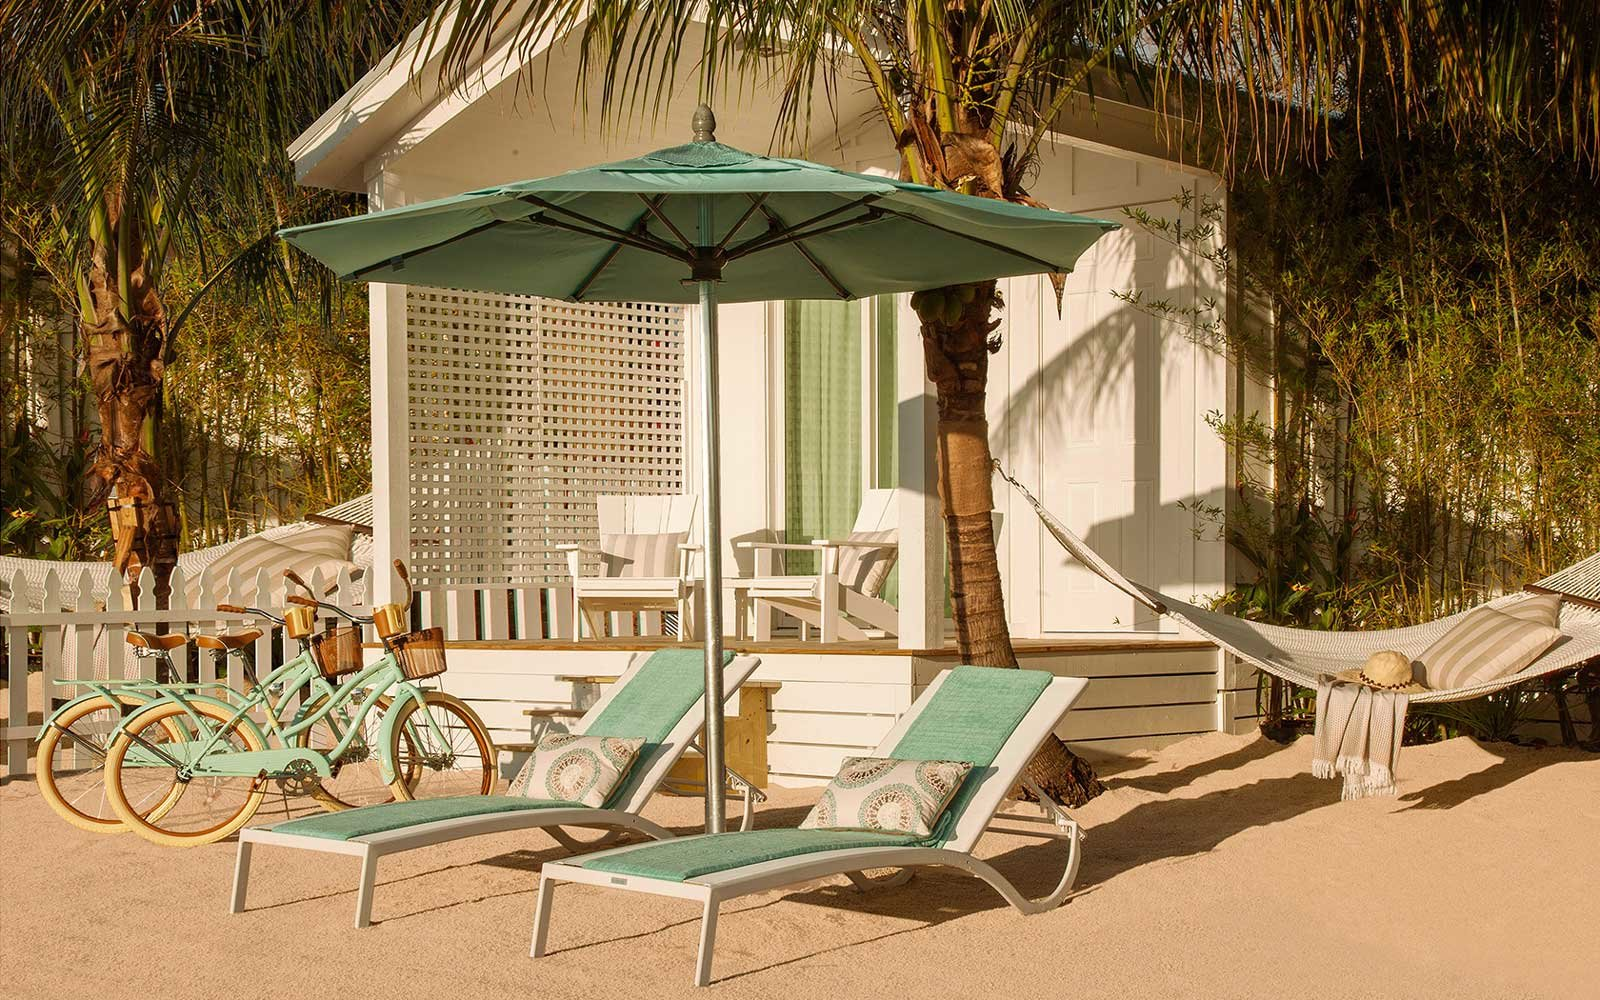 Beach area at Bungalows resort in Key West, Florida